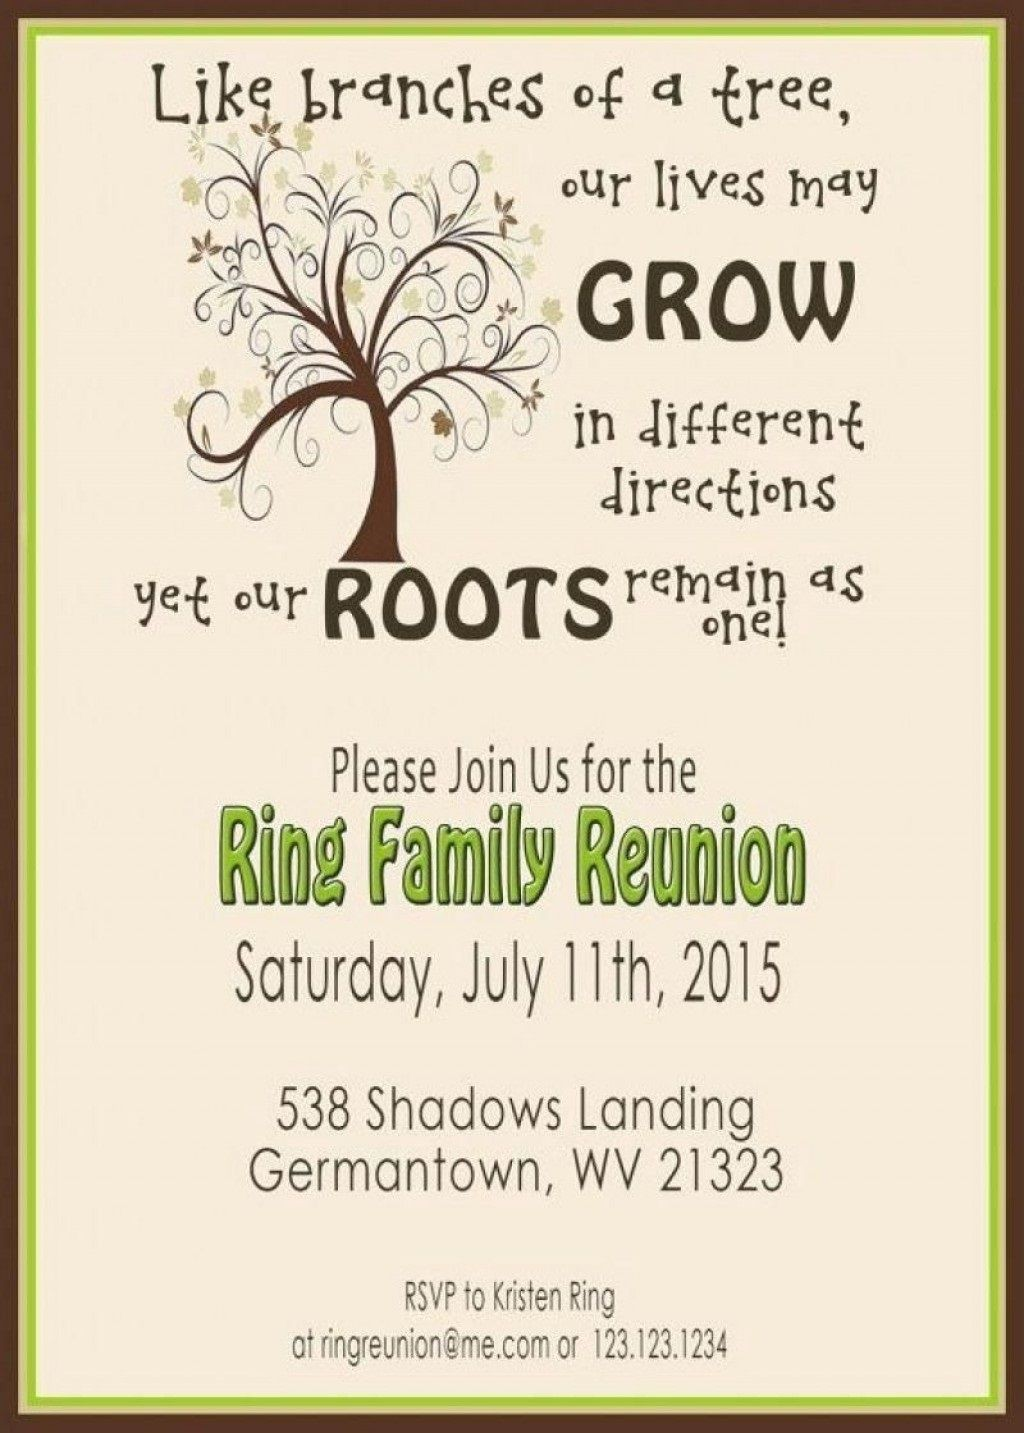 008 Staggering Free Family Reunion Flyer Template Word Concept Large